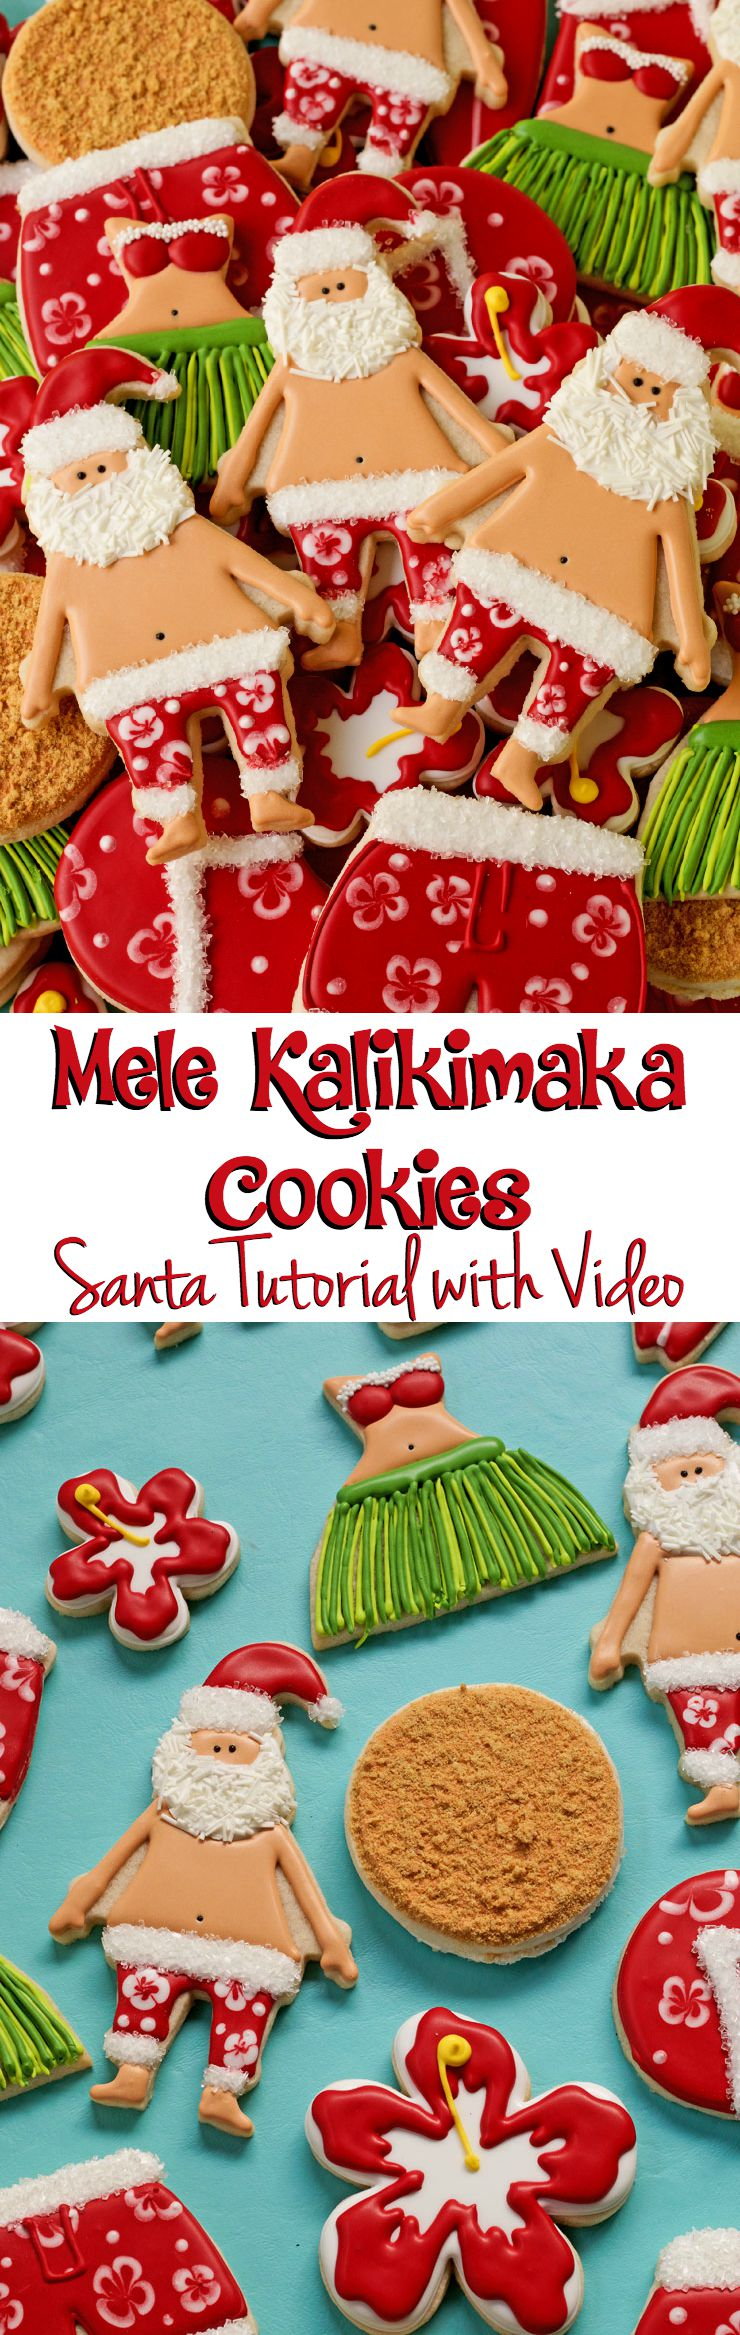 Mele Kalikimaka Cookies- Step by Step Tutorial with Video via www.thebearfootbaker.com